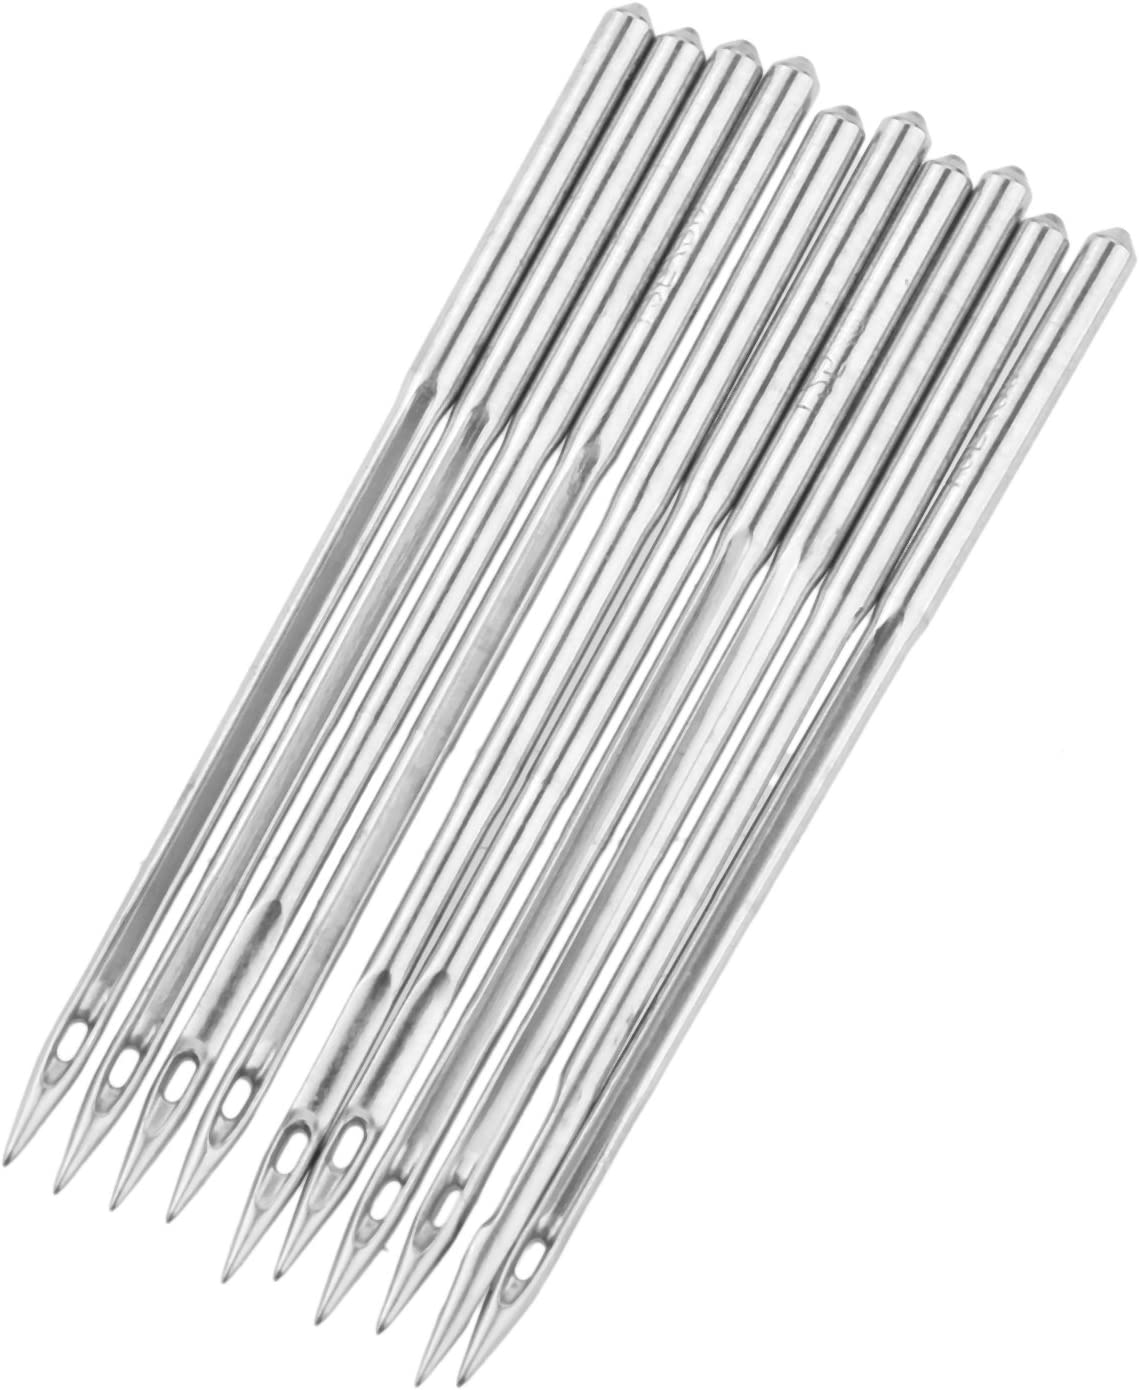 10Pcs DB1 Industrial Sewing Machine Needles for JUKI DDL-555 Singer Brother,Size:7//55